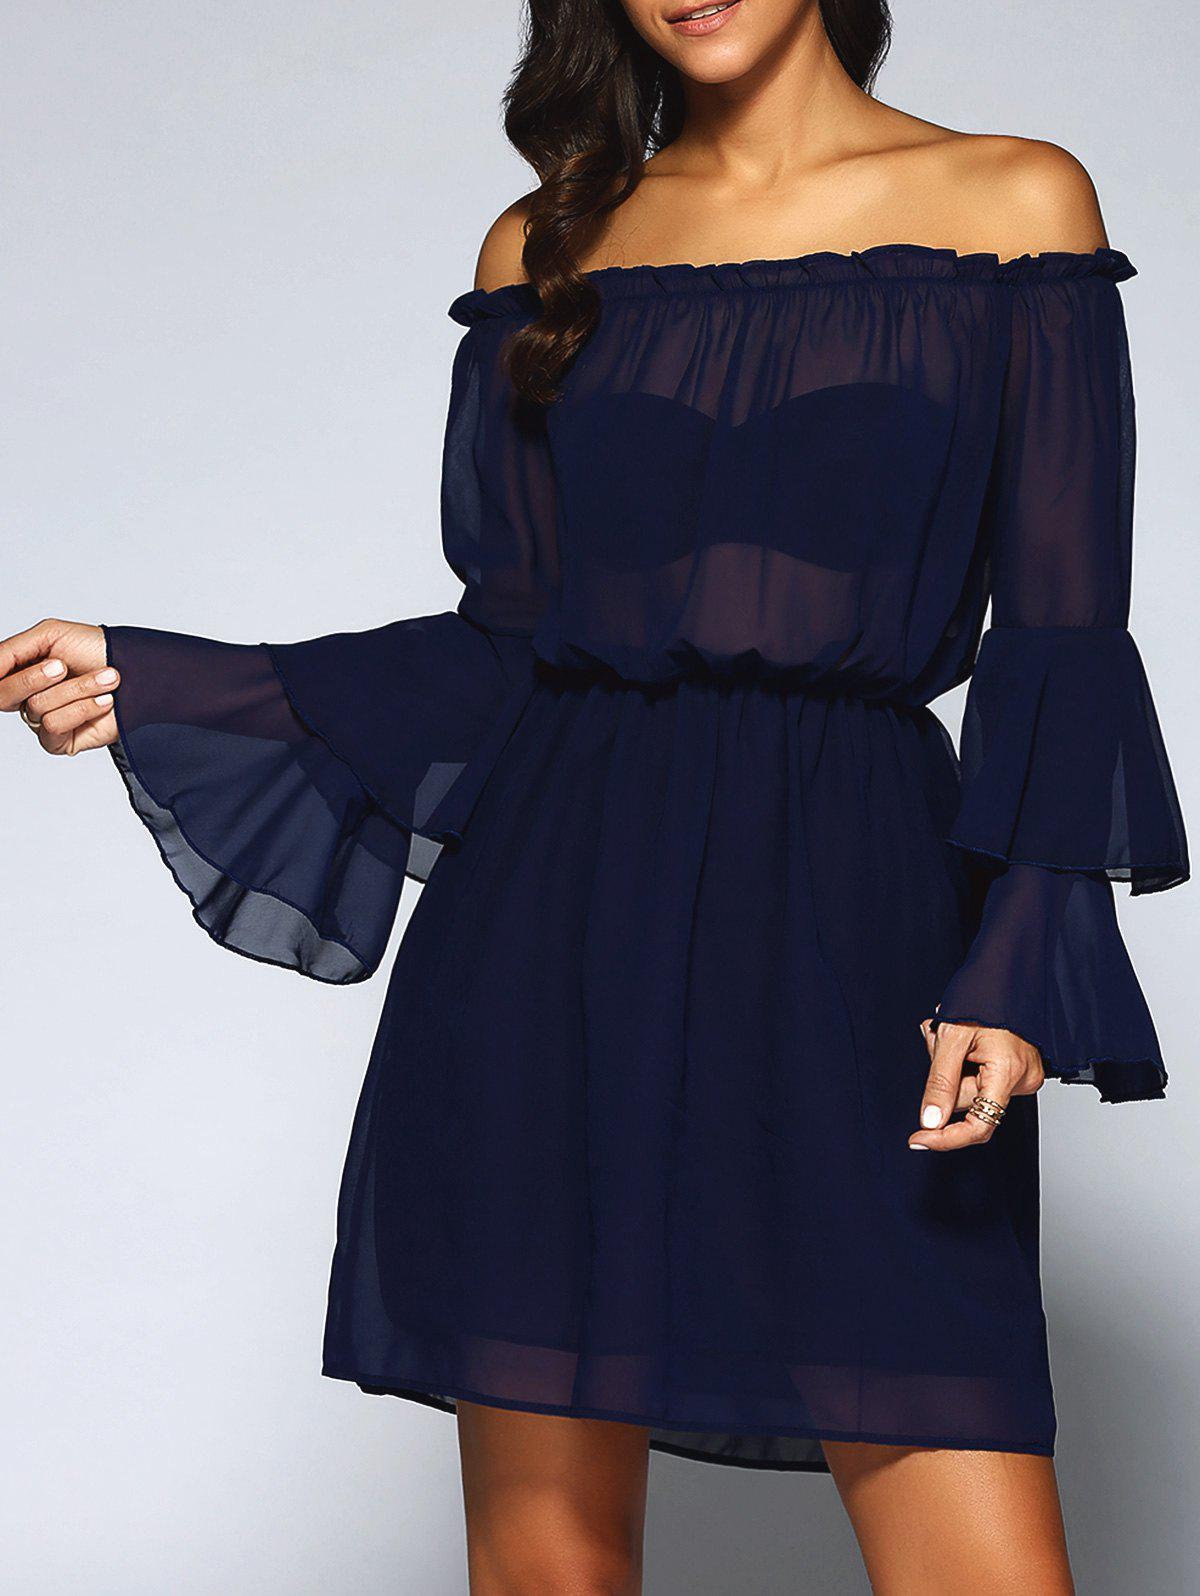 Off-The-Shoulder Layered Flare Sleeve Chiffon DressWomen<br><br><br>Size: L<br>Color: DEEP BLUE